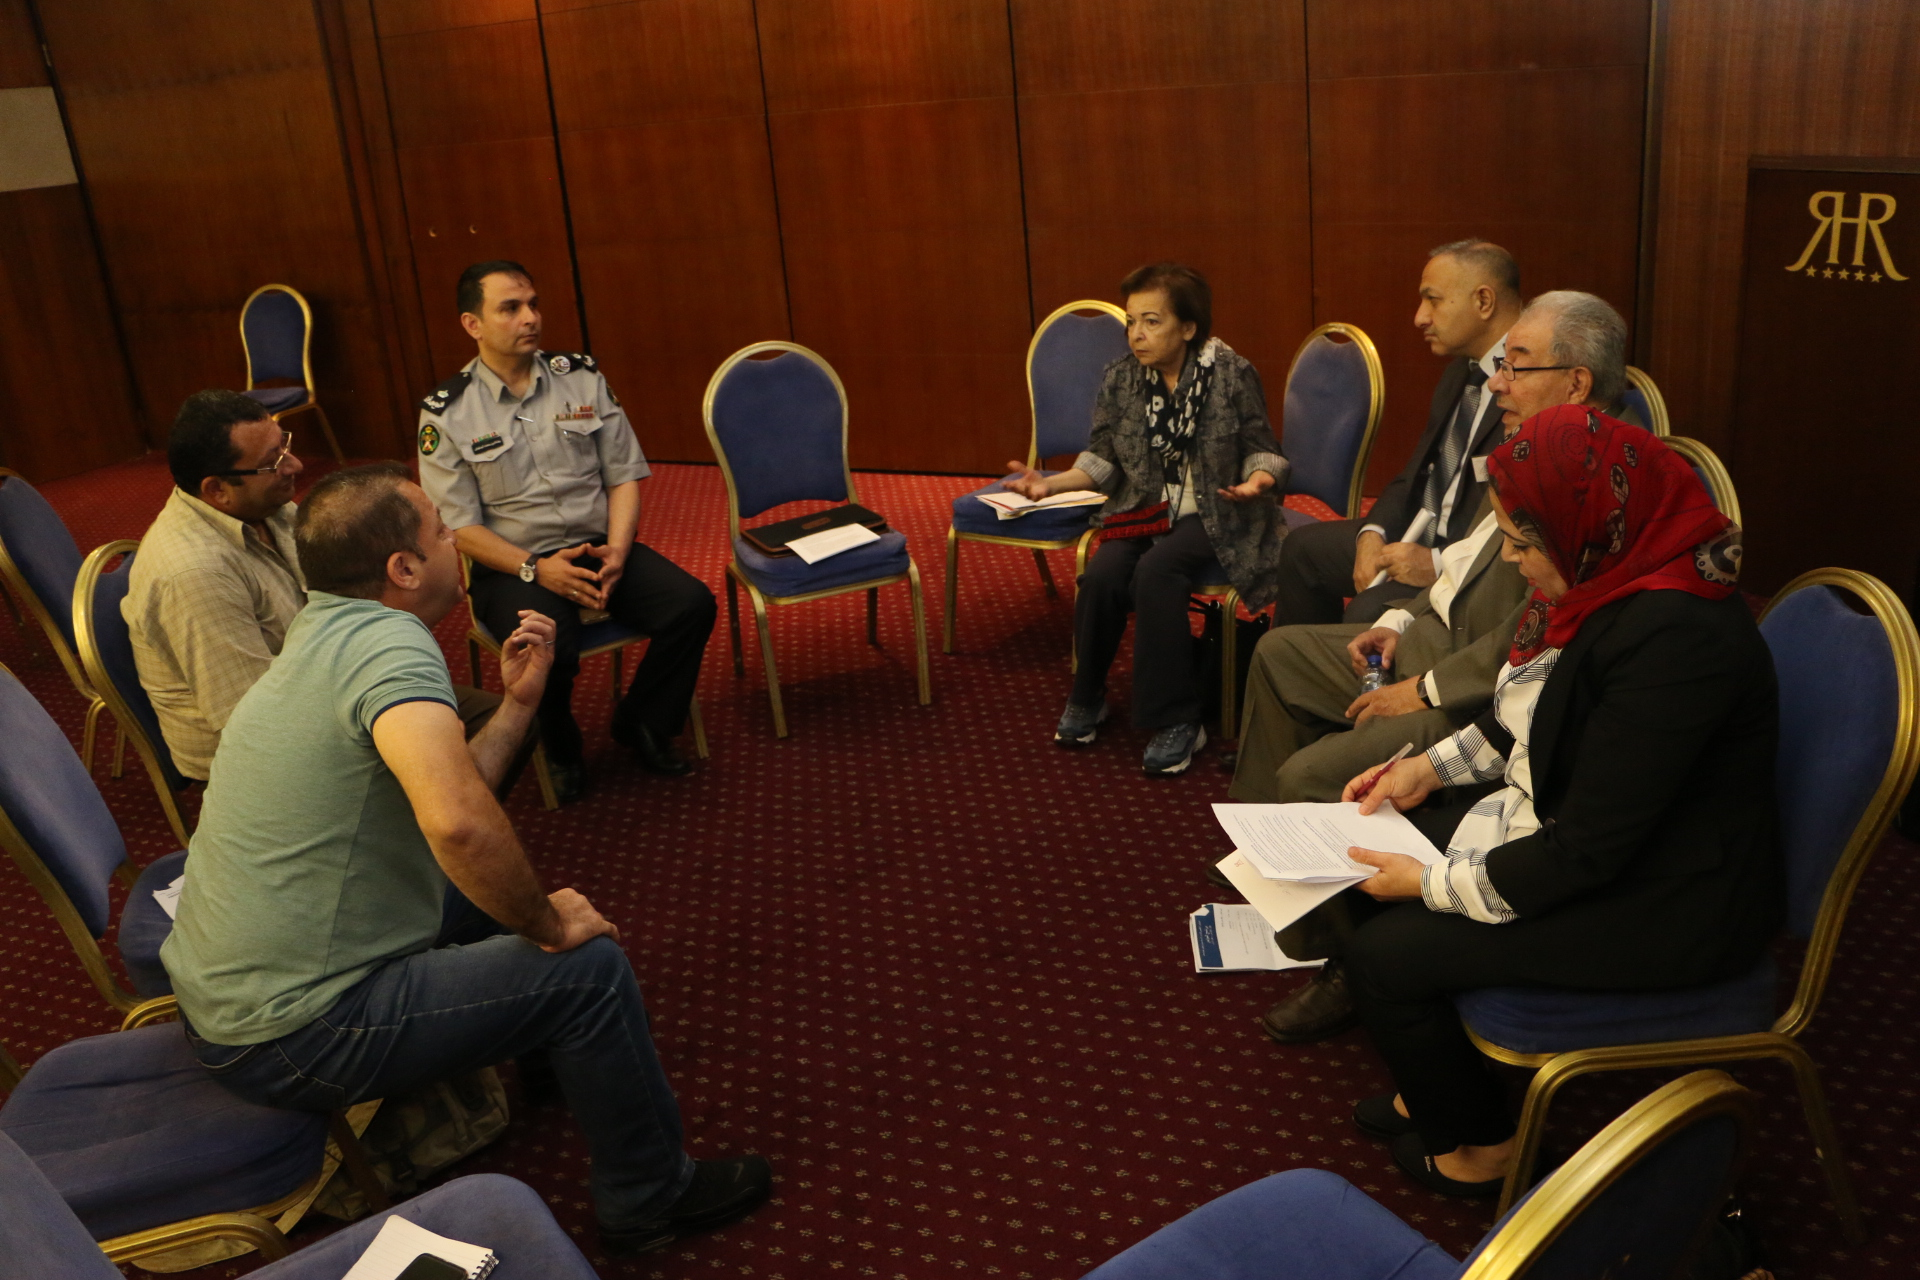 Middle East Regional Conference on Localisation - Day 2 - Group Discussions 4